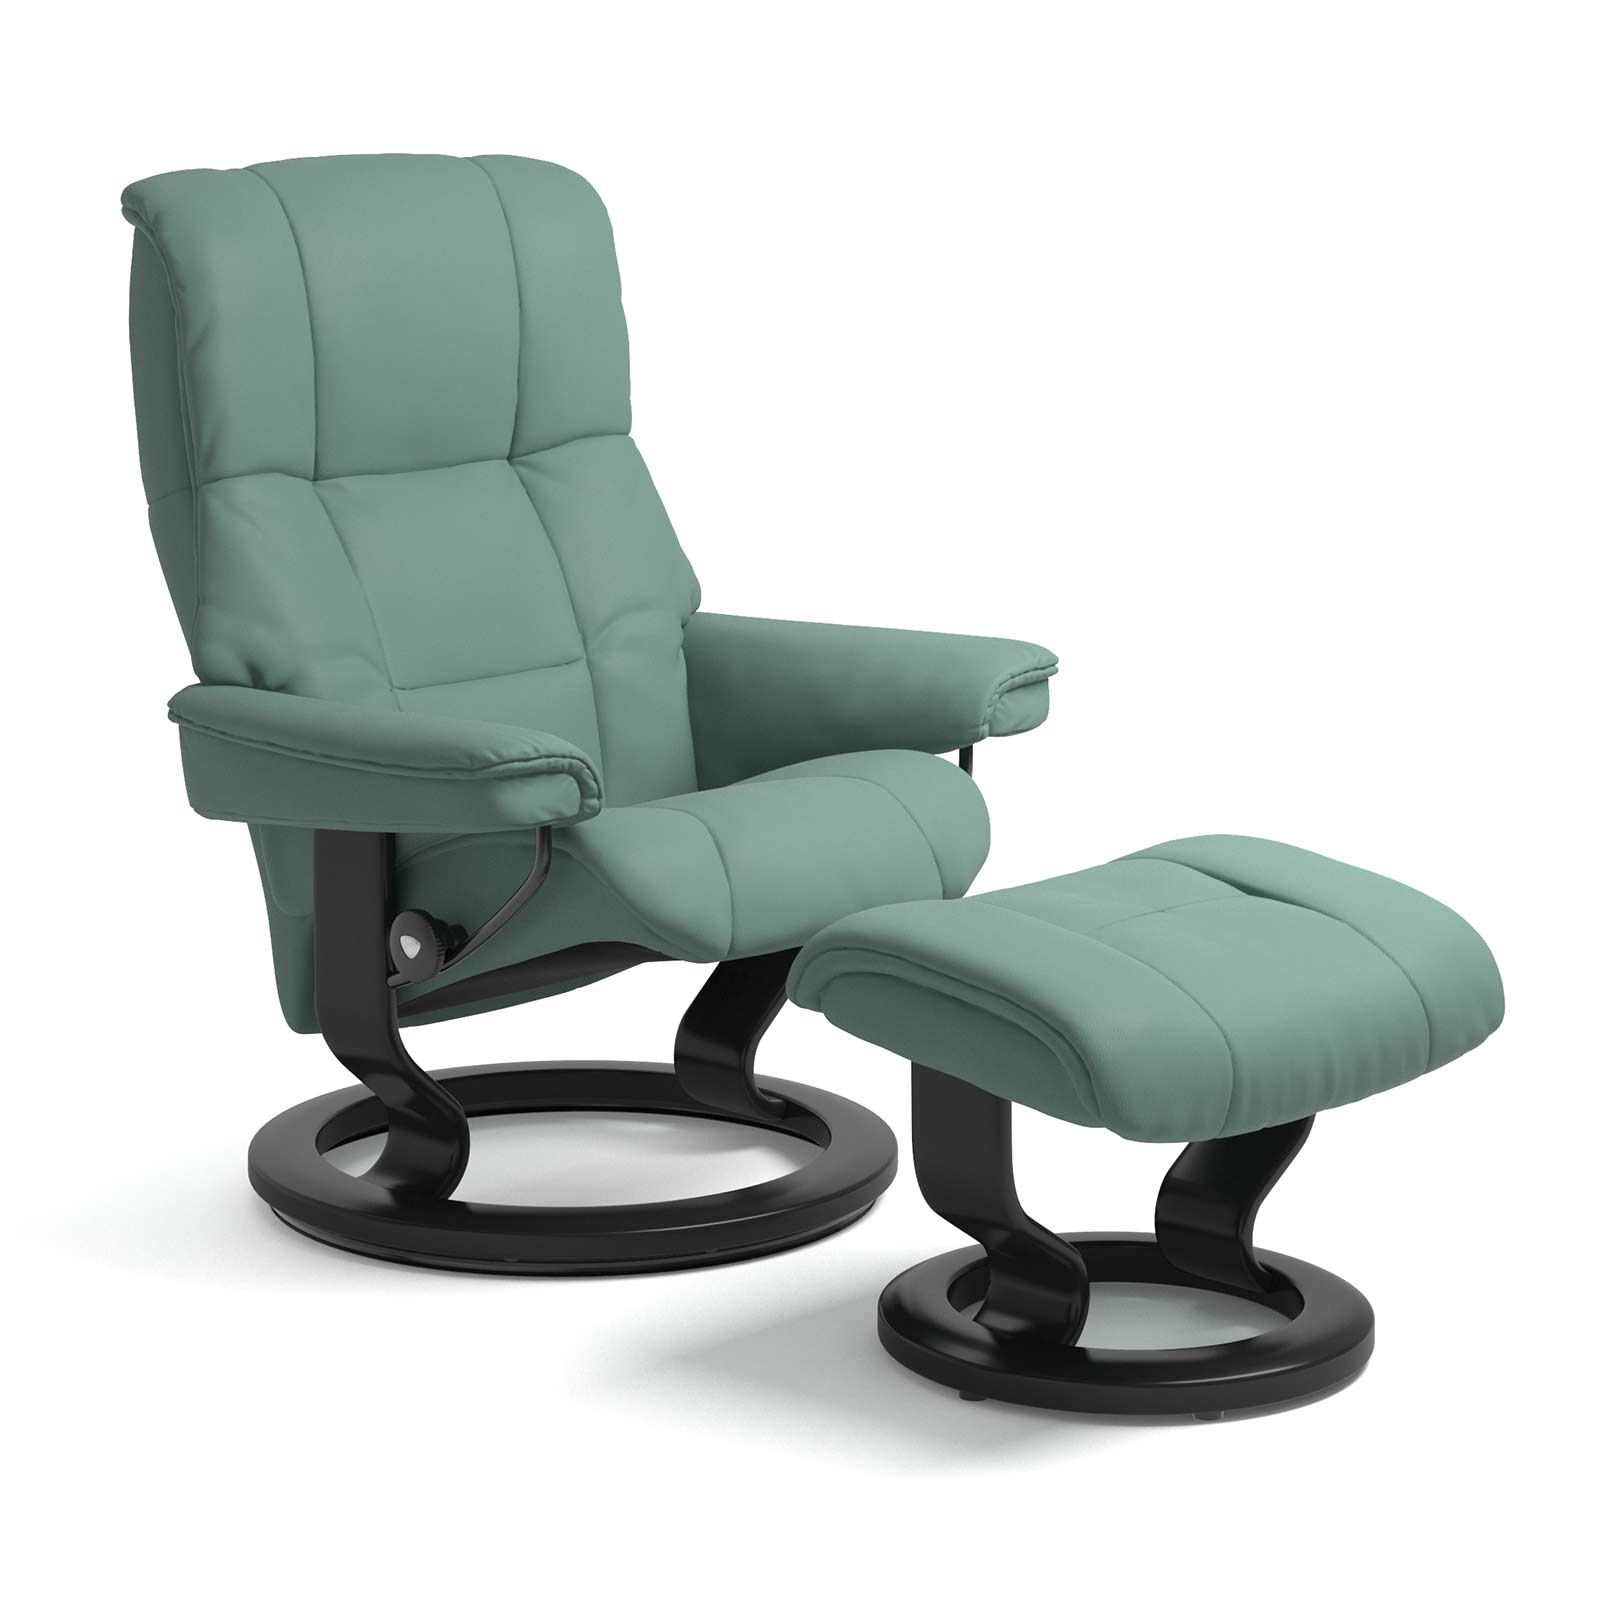 Sessel Aqua Stressless Mayfair Classic Paloma Aqua Green Mit Hocker